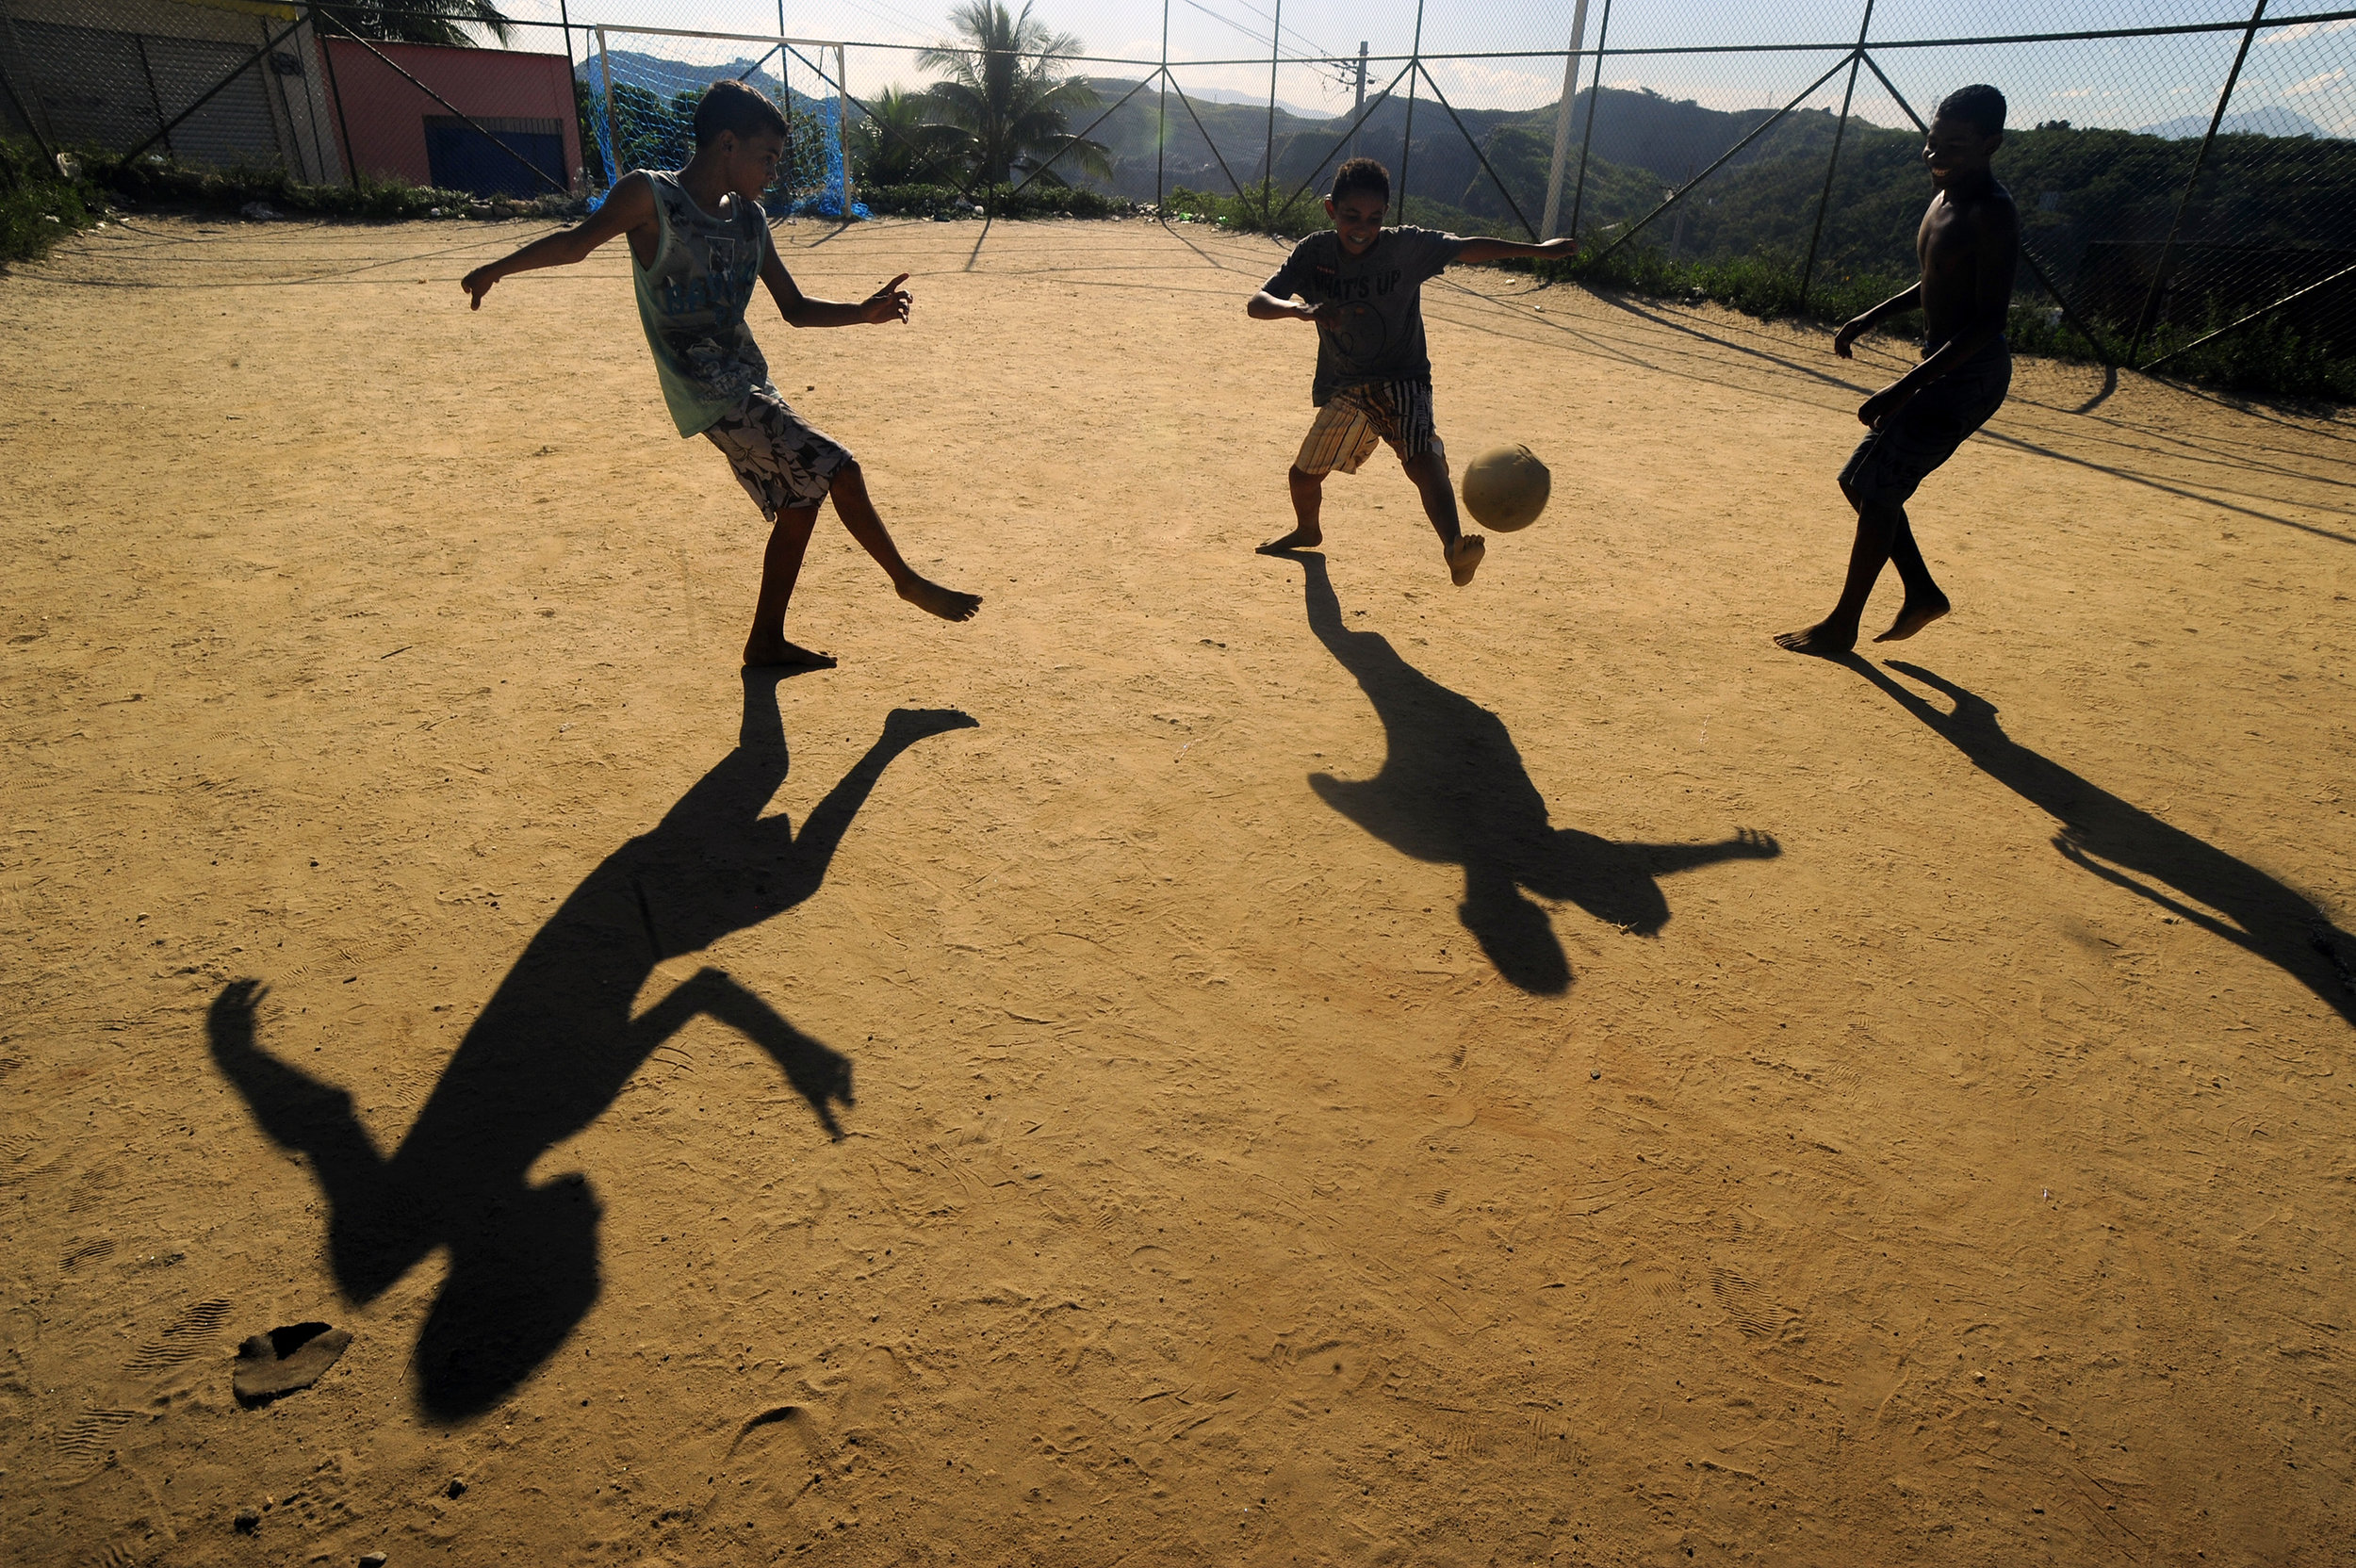 Children play soccer in the Favela do Alemão.JPG.Children play soccer in the Favela do Alemão.JPG.Children play soccer in the Favela do Alemão (22).JPG